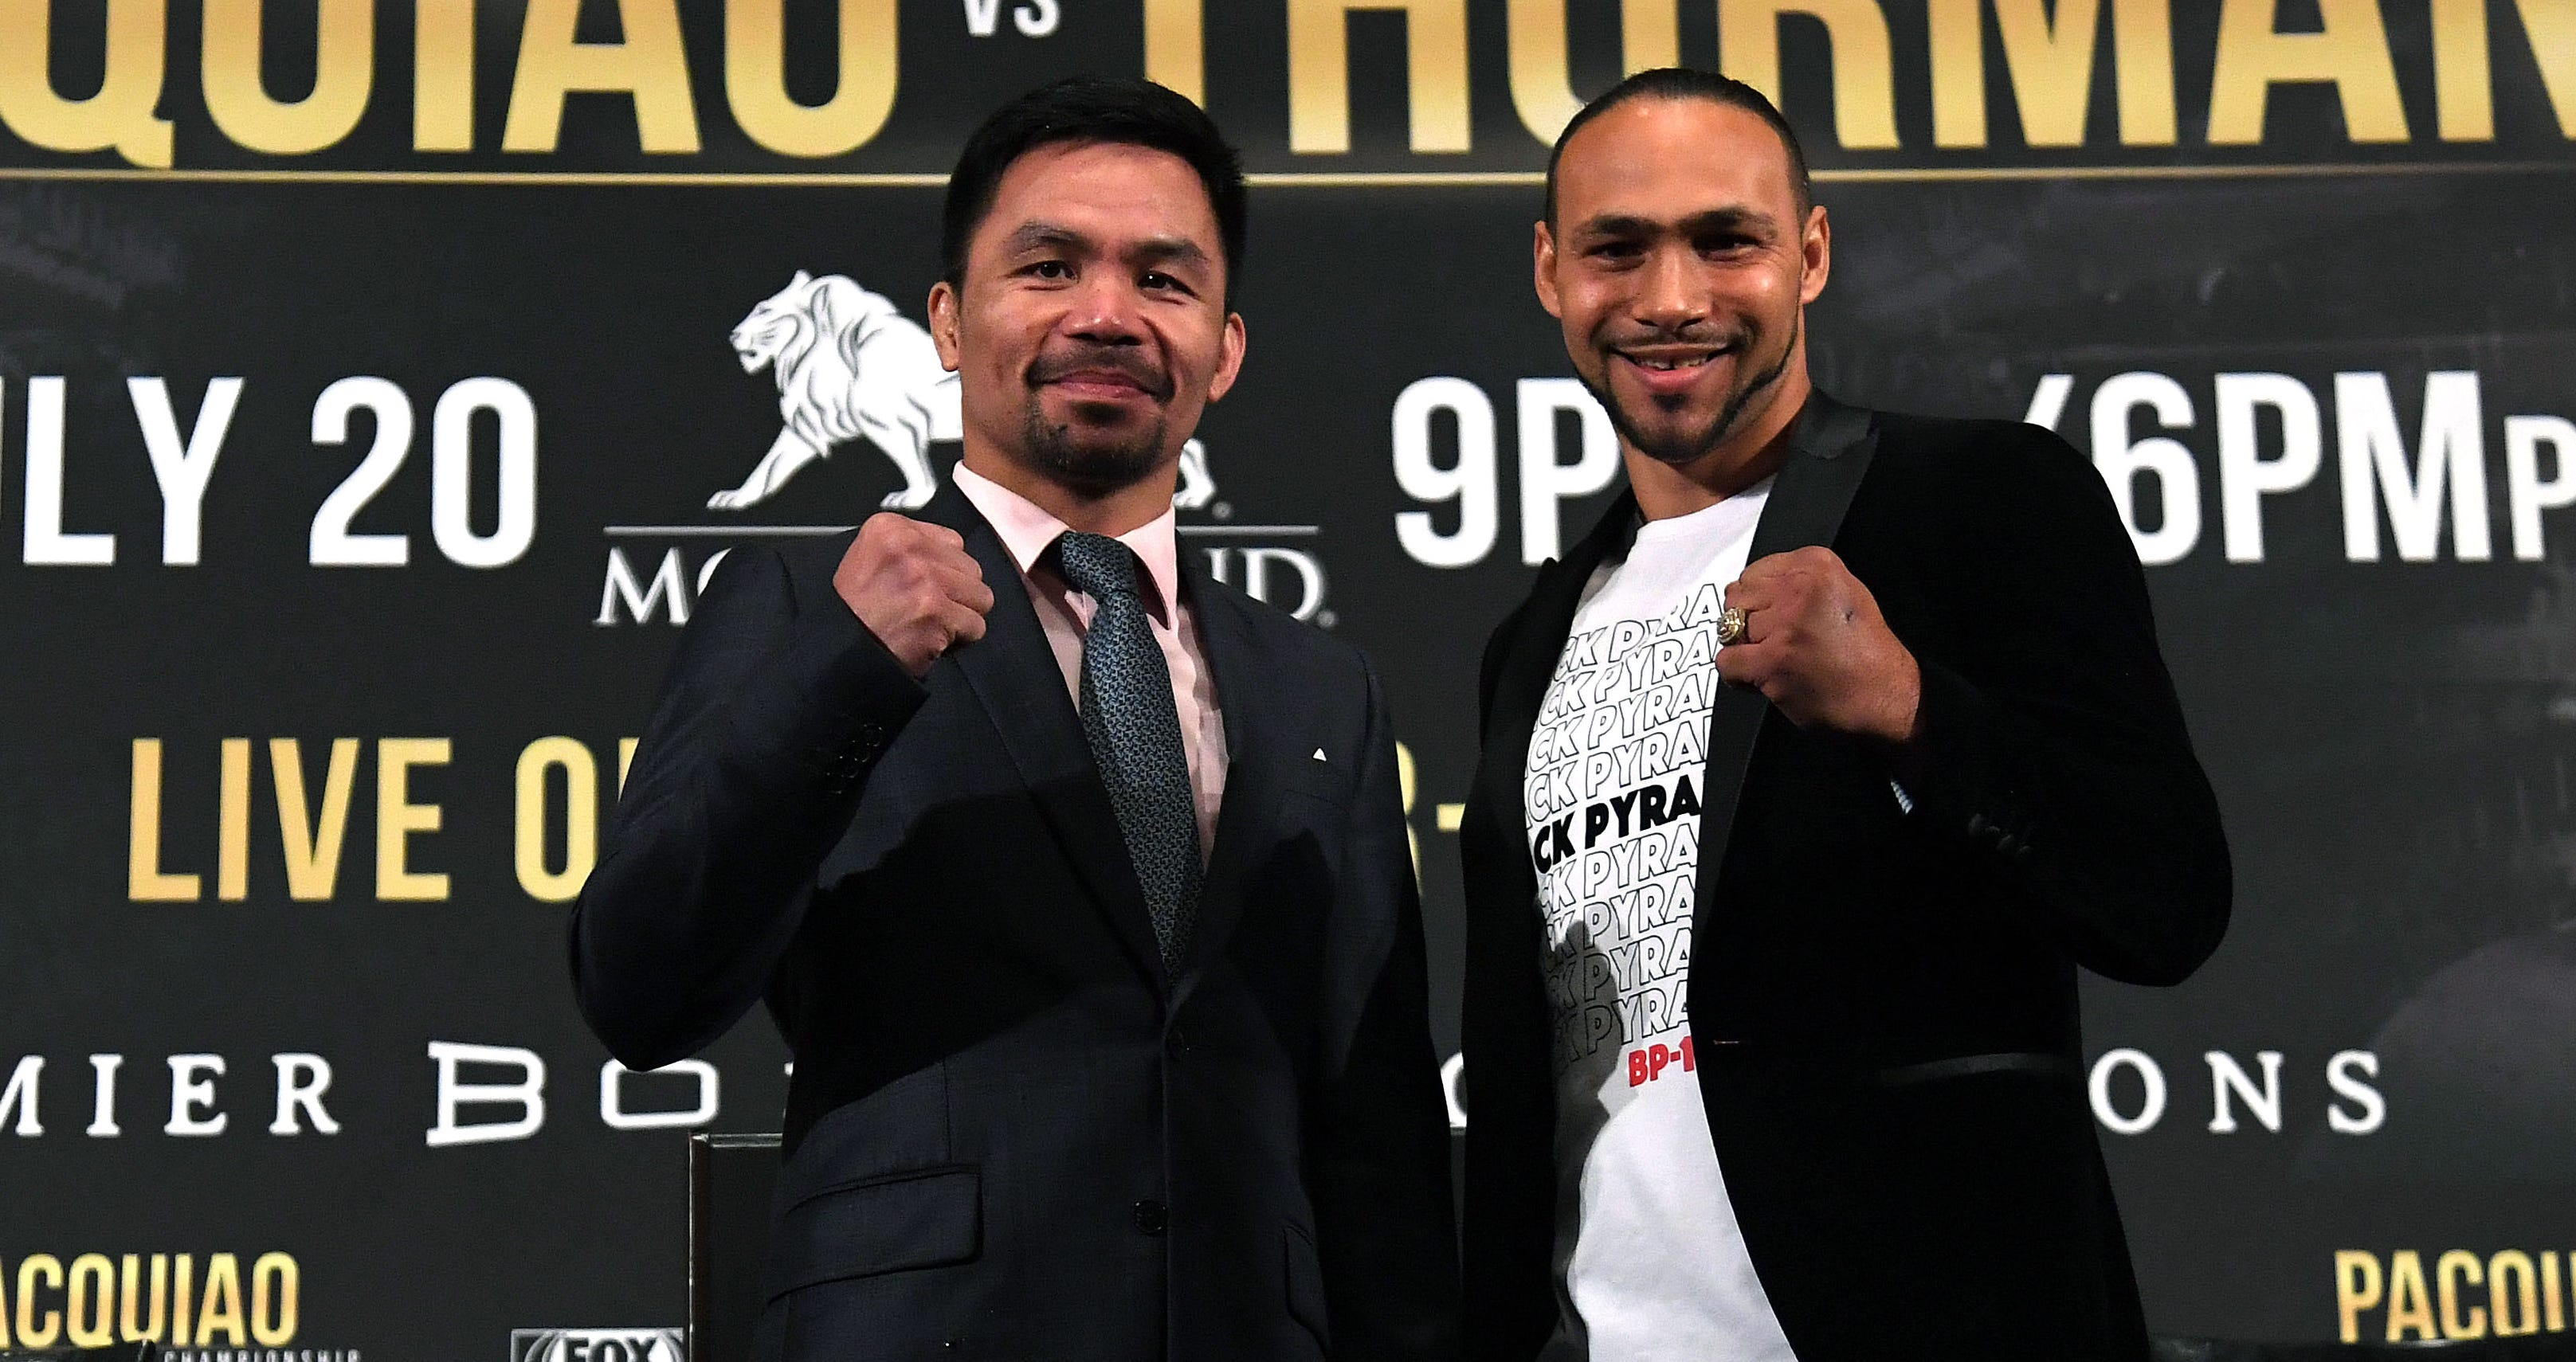 'T-Rex arms:' Keith Thurman lets the Manny Pacquiao insults fly at news conference